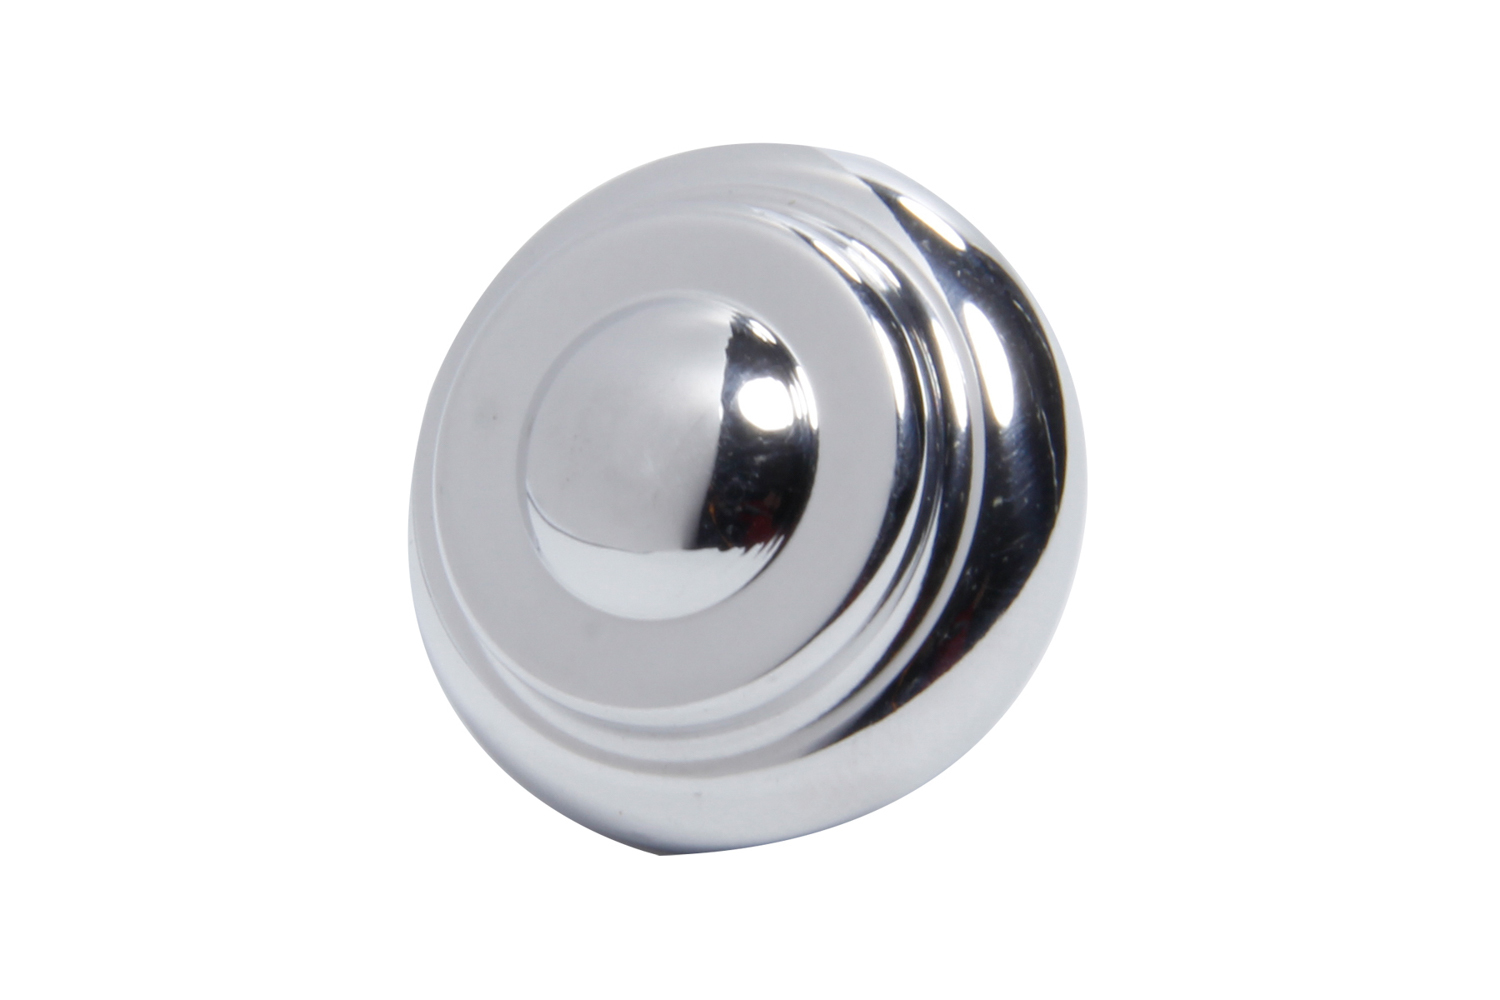 Vintage Air 49302-VUQ Dash Knob, StreamLine, Rotary Switch, Aluminum, Polished, Each